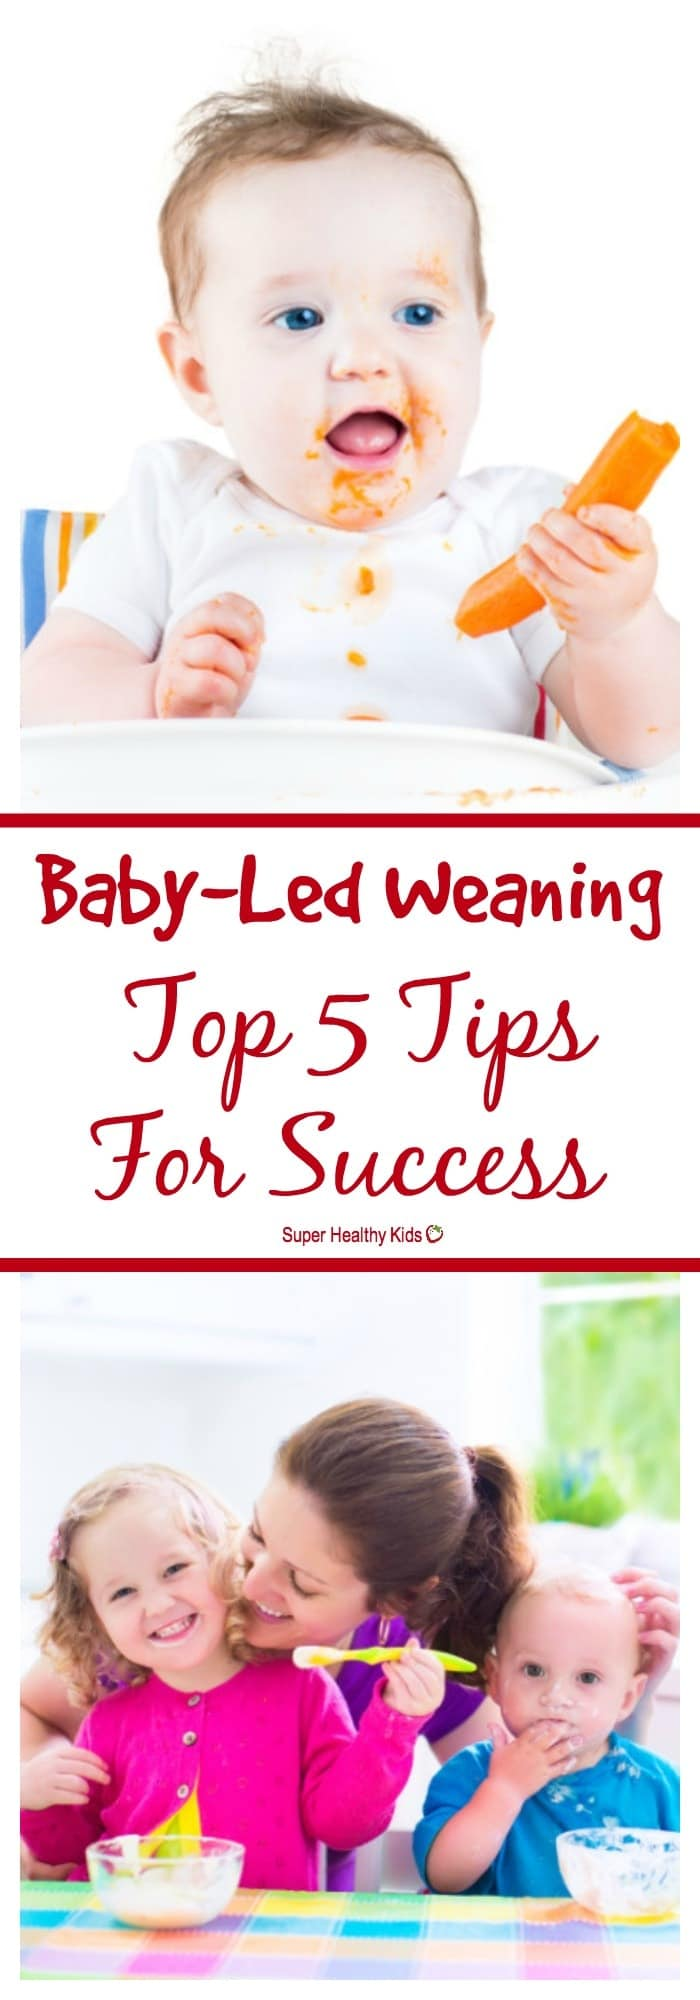 BABY - Baby-Led Weaning: Top 5 Tips For Success. The top tips for successful baby-led weaning, from a dietitian and mom. https://www.superhealthykids.com/baby-led-weaning-top-5-tips-success/